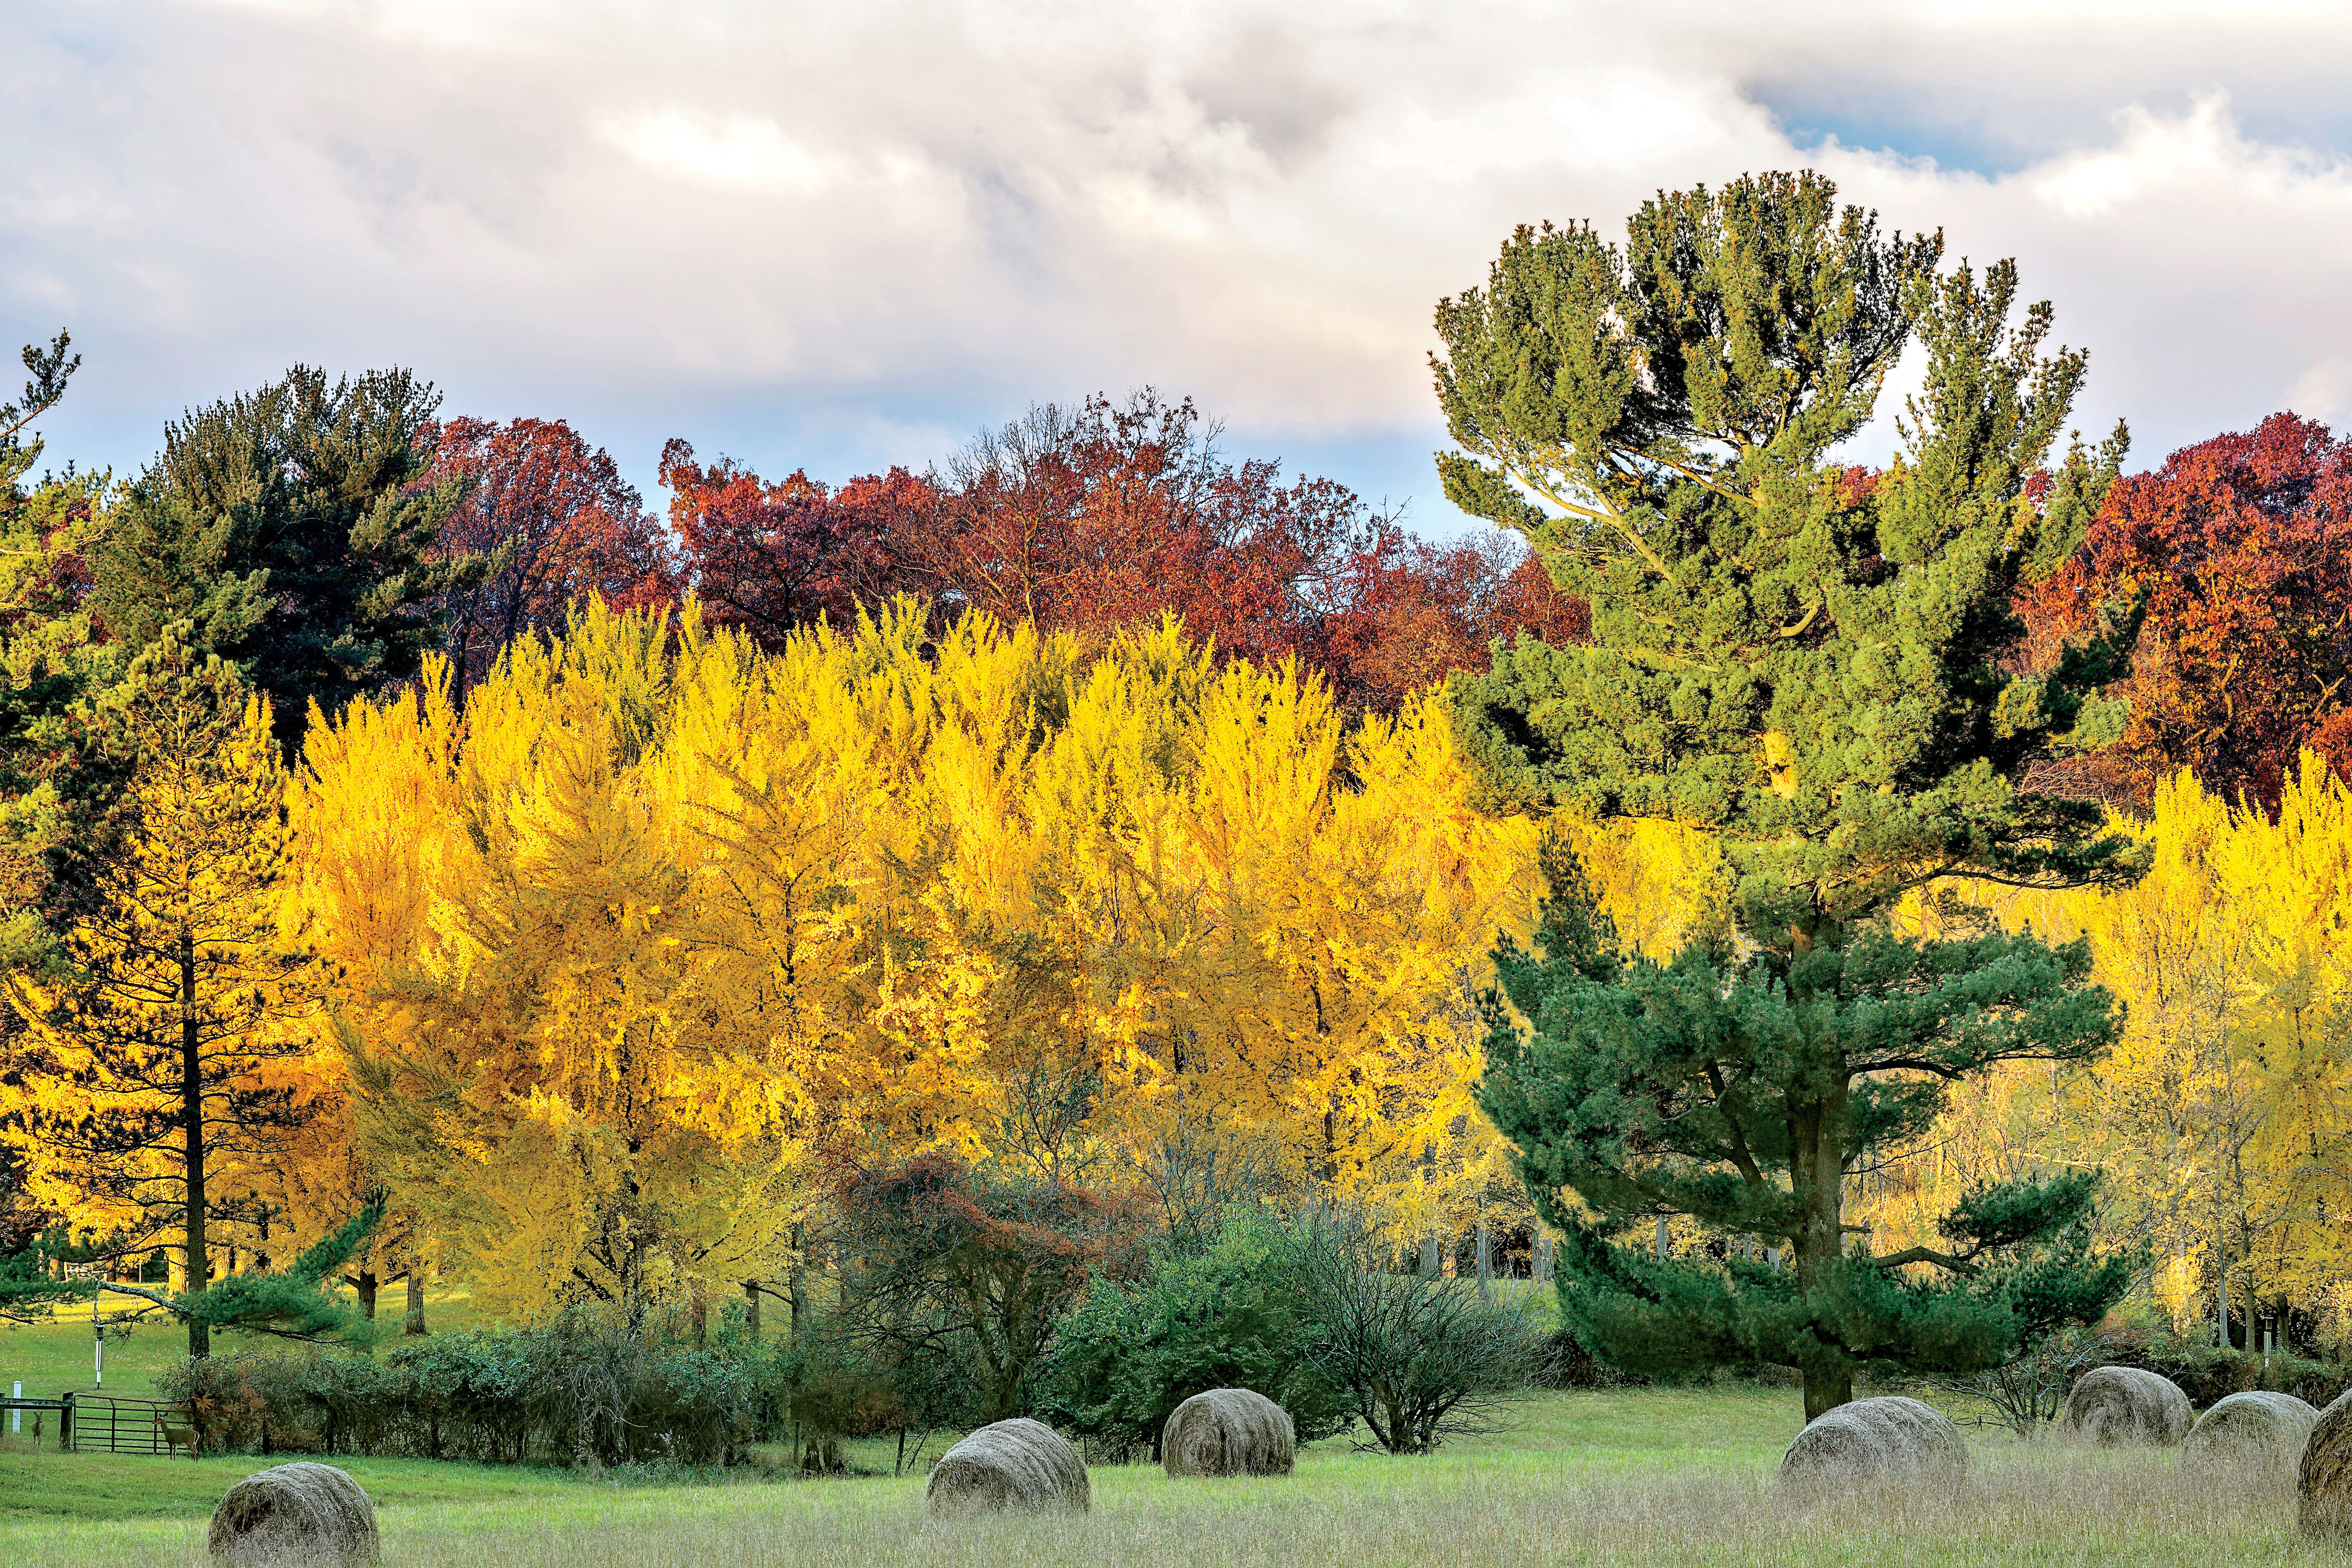 5 Things To Know About Ginkgo Trees and All Their Glorious Color